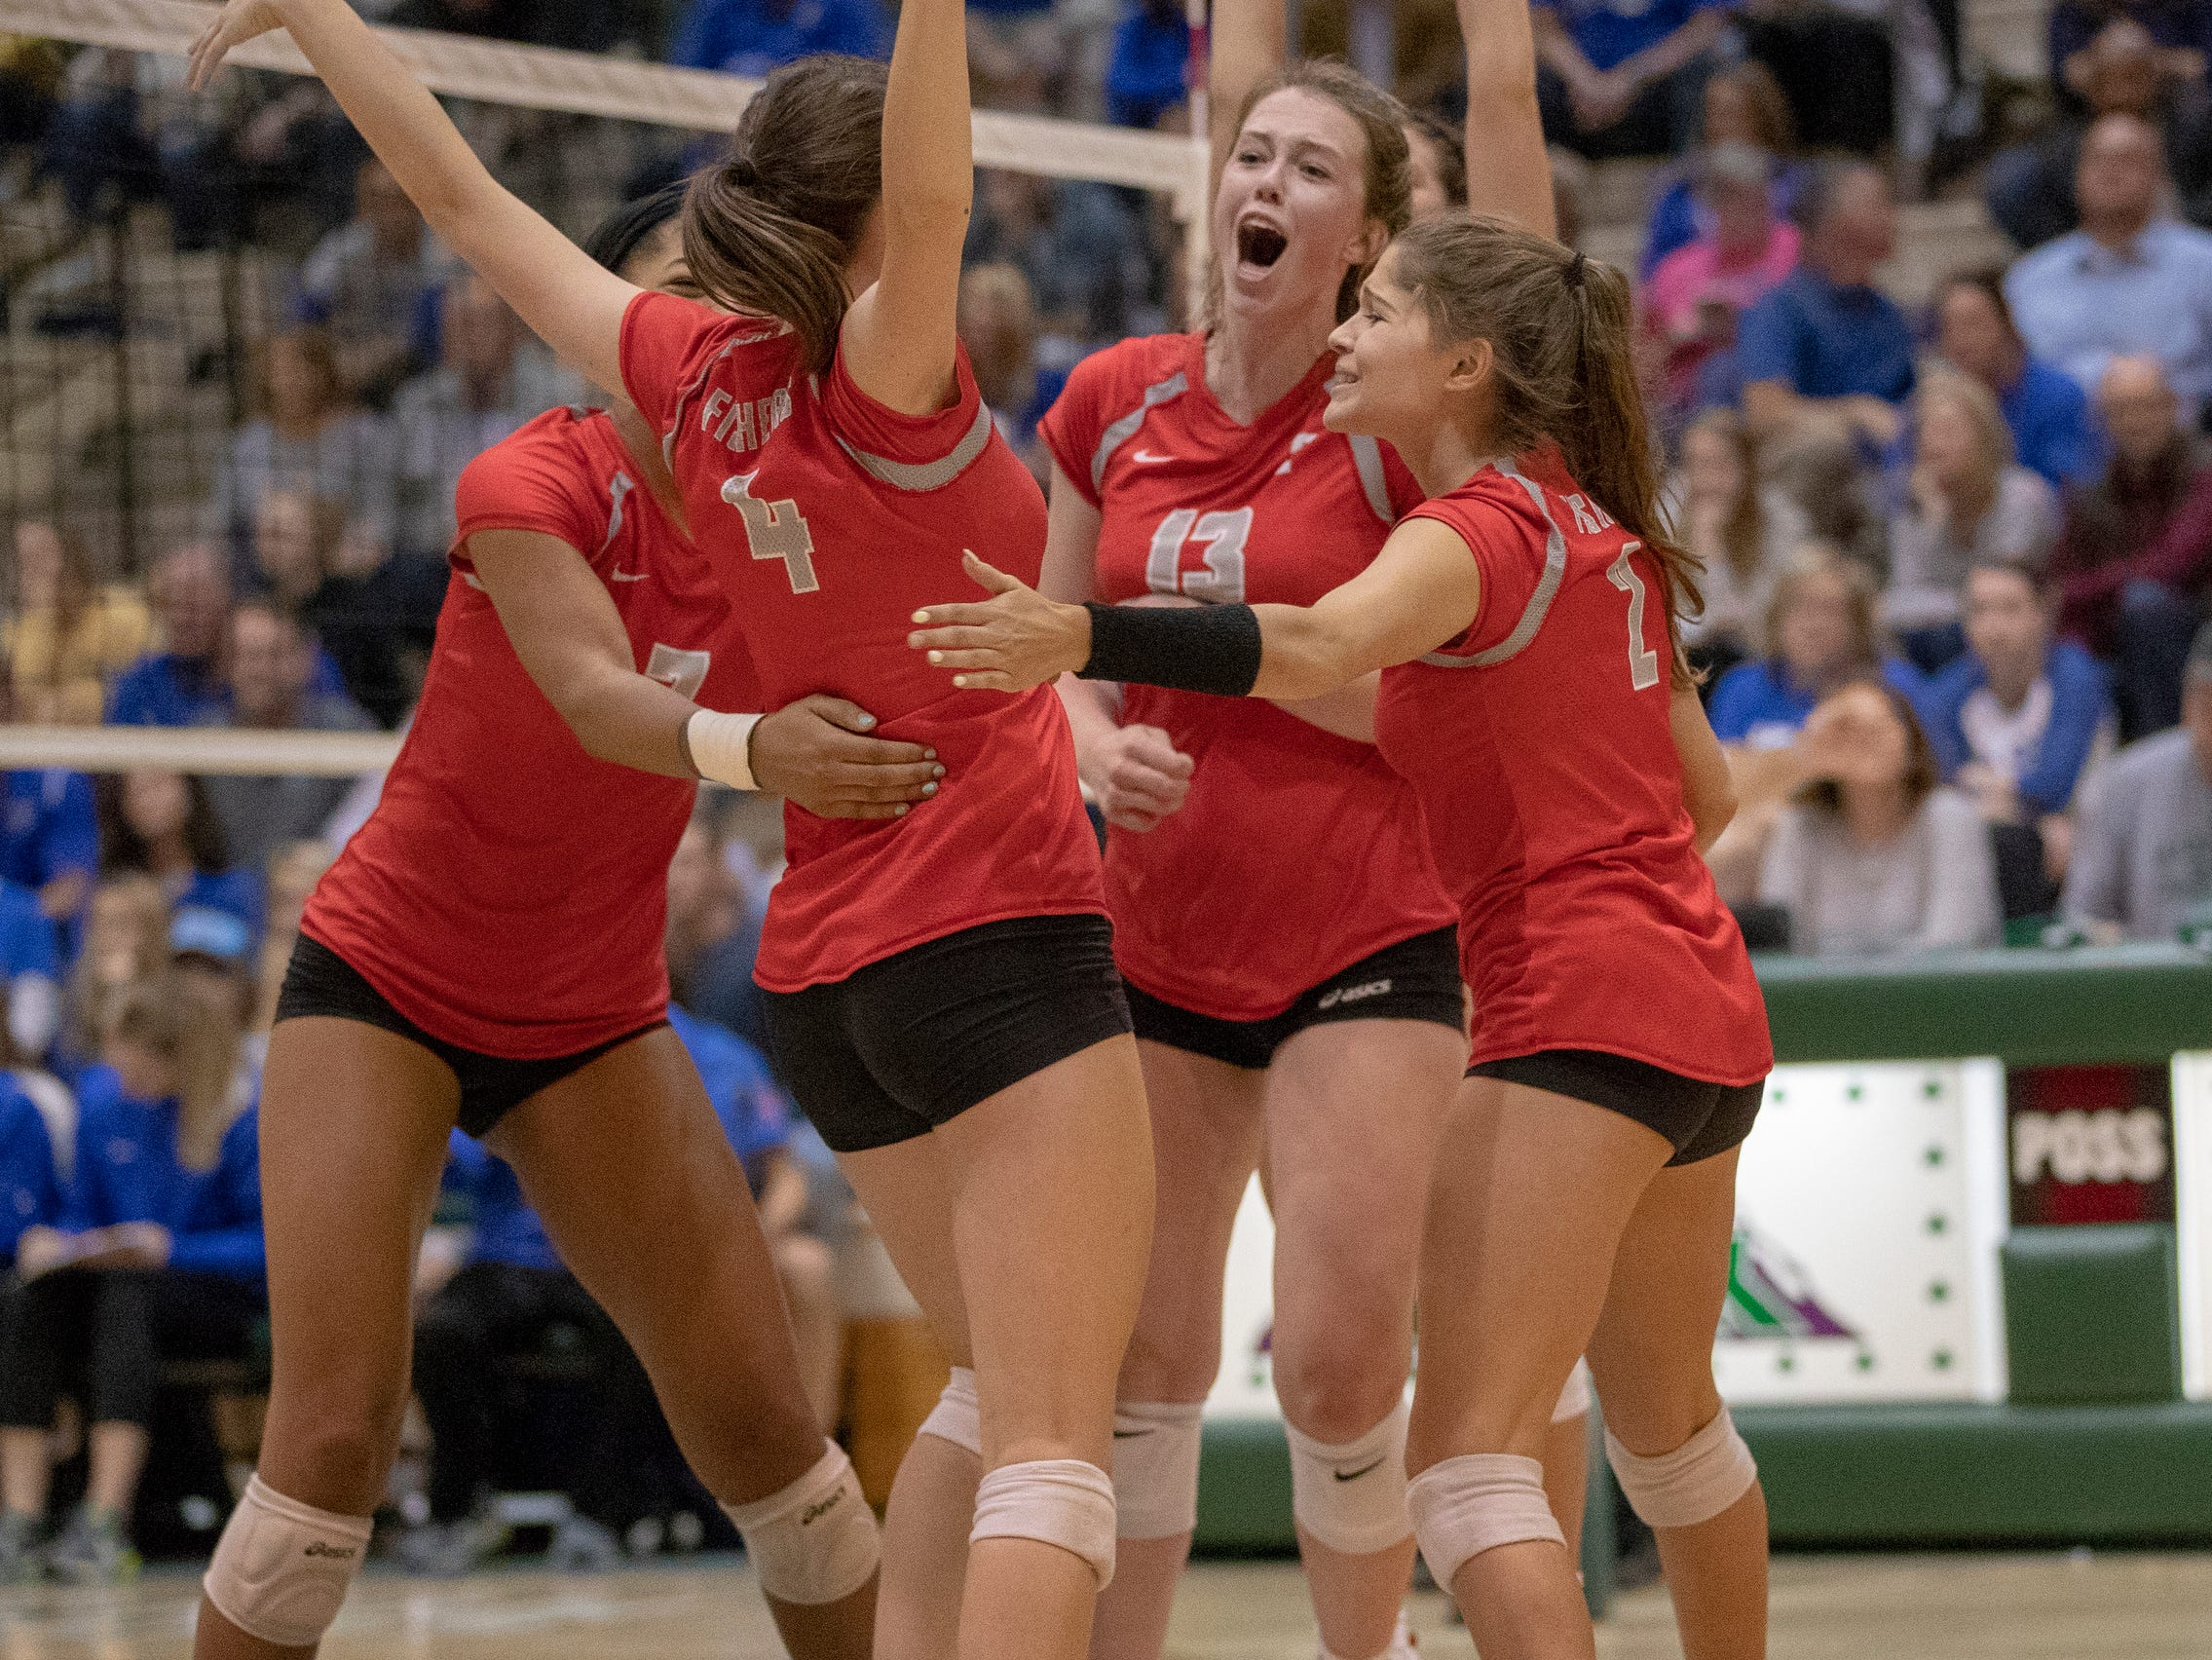 Fishers High School cheers a point as they defeat Hamilton Southeastern High School in three straight sets in the first round of the sectional at Westfield High School, Westfield, Thursday, Oct. 11, 2018. The win matches them up with Westfield High School for a game on Saturday morning at 11a.m.